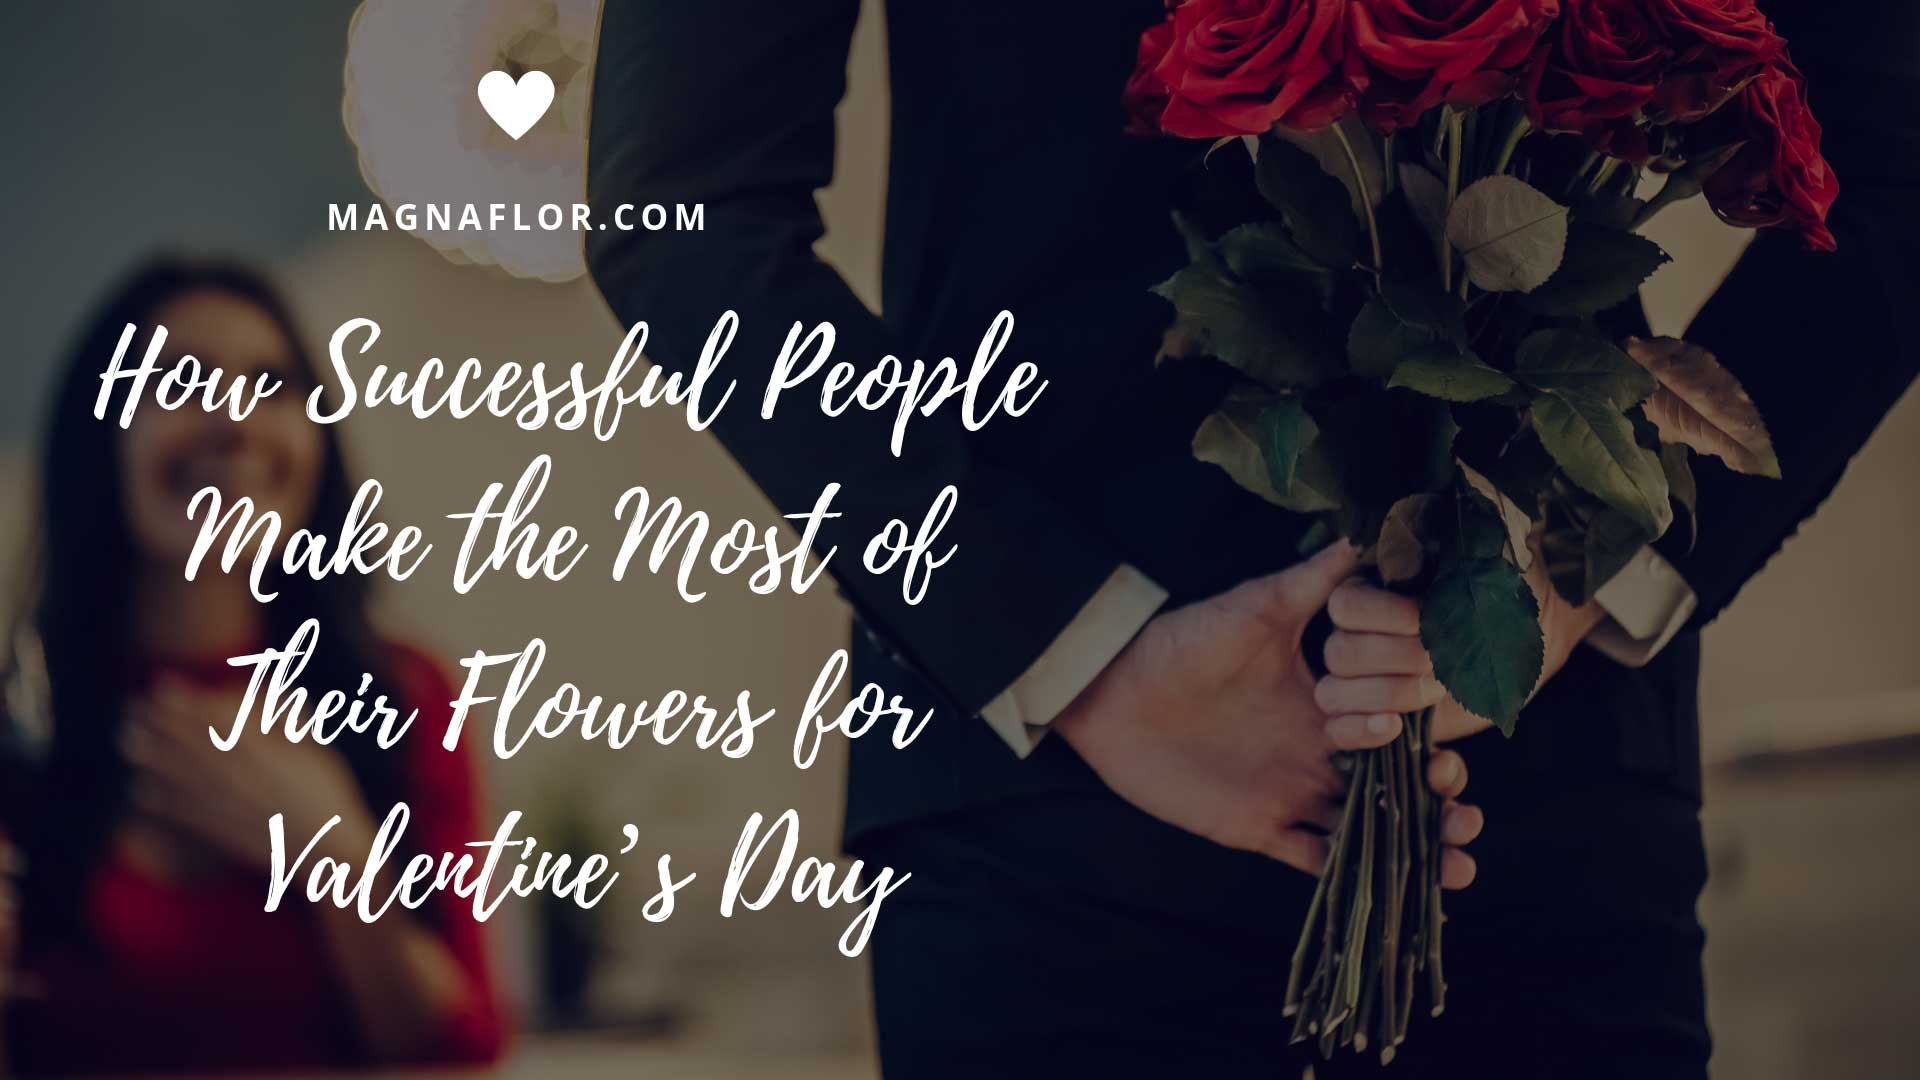 How Successful People Make The Most Of Their Flowers For Valentine's Day